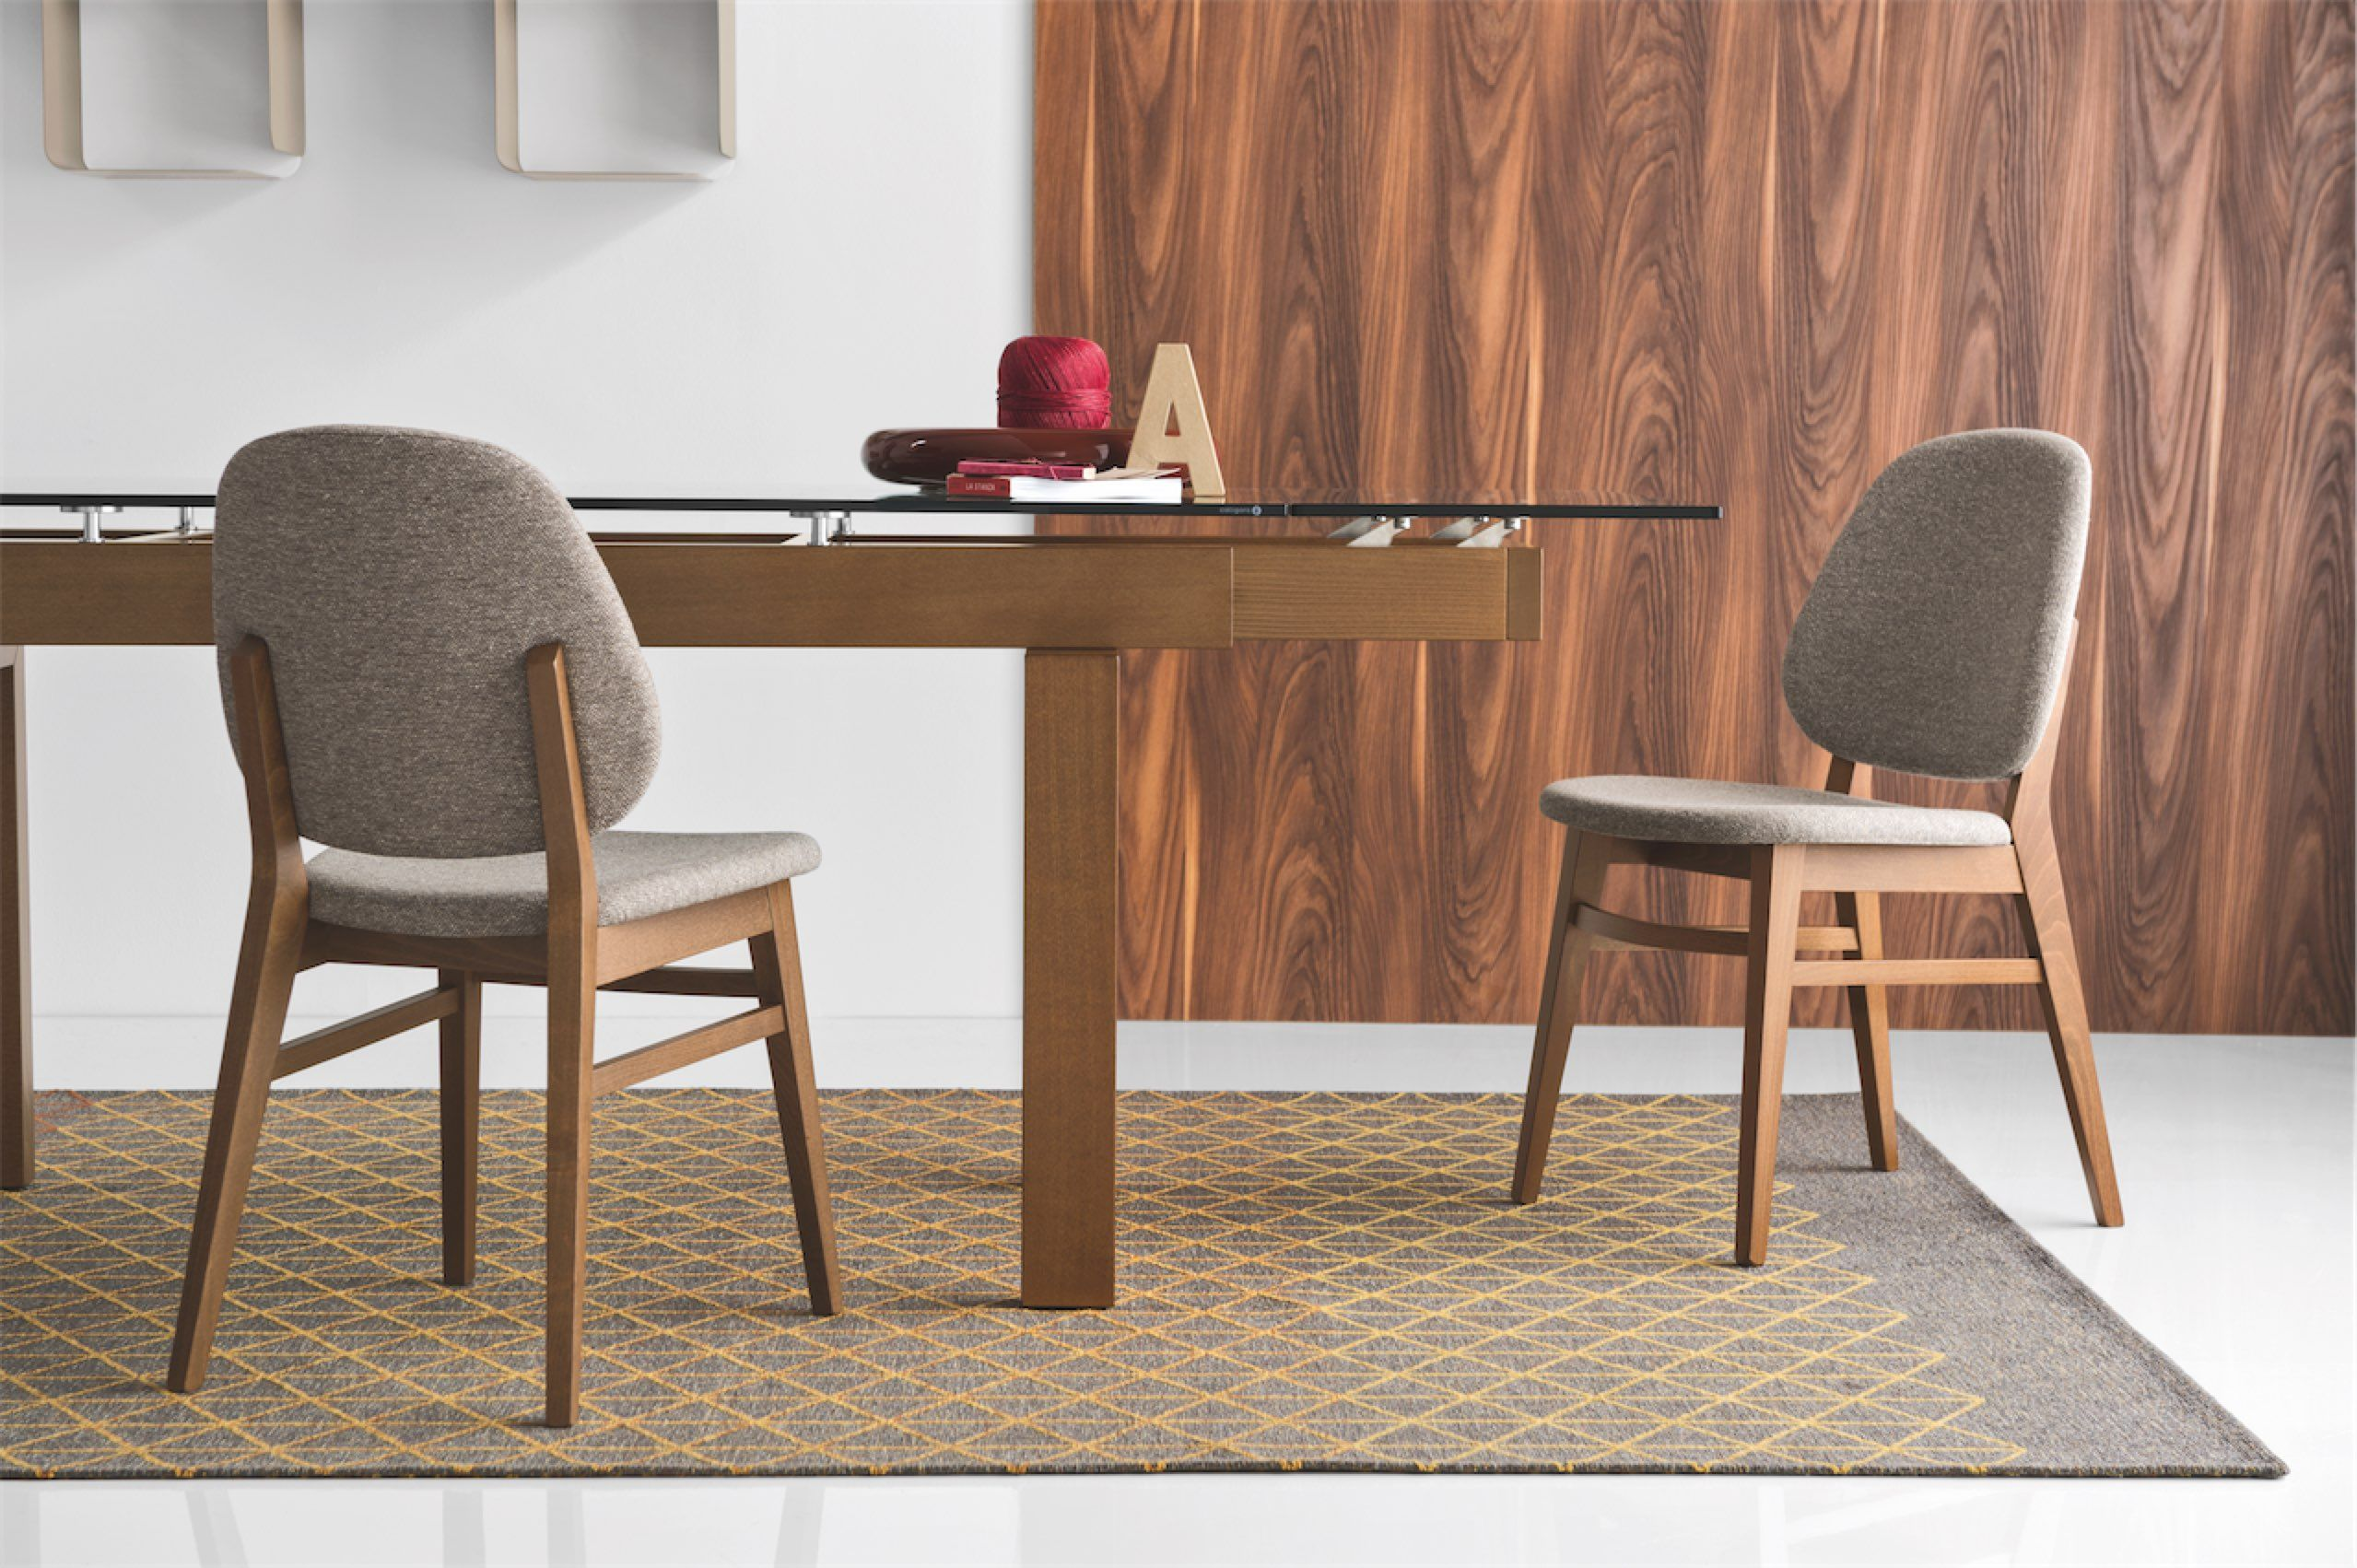 Etoile Calligaris dining chair